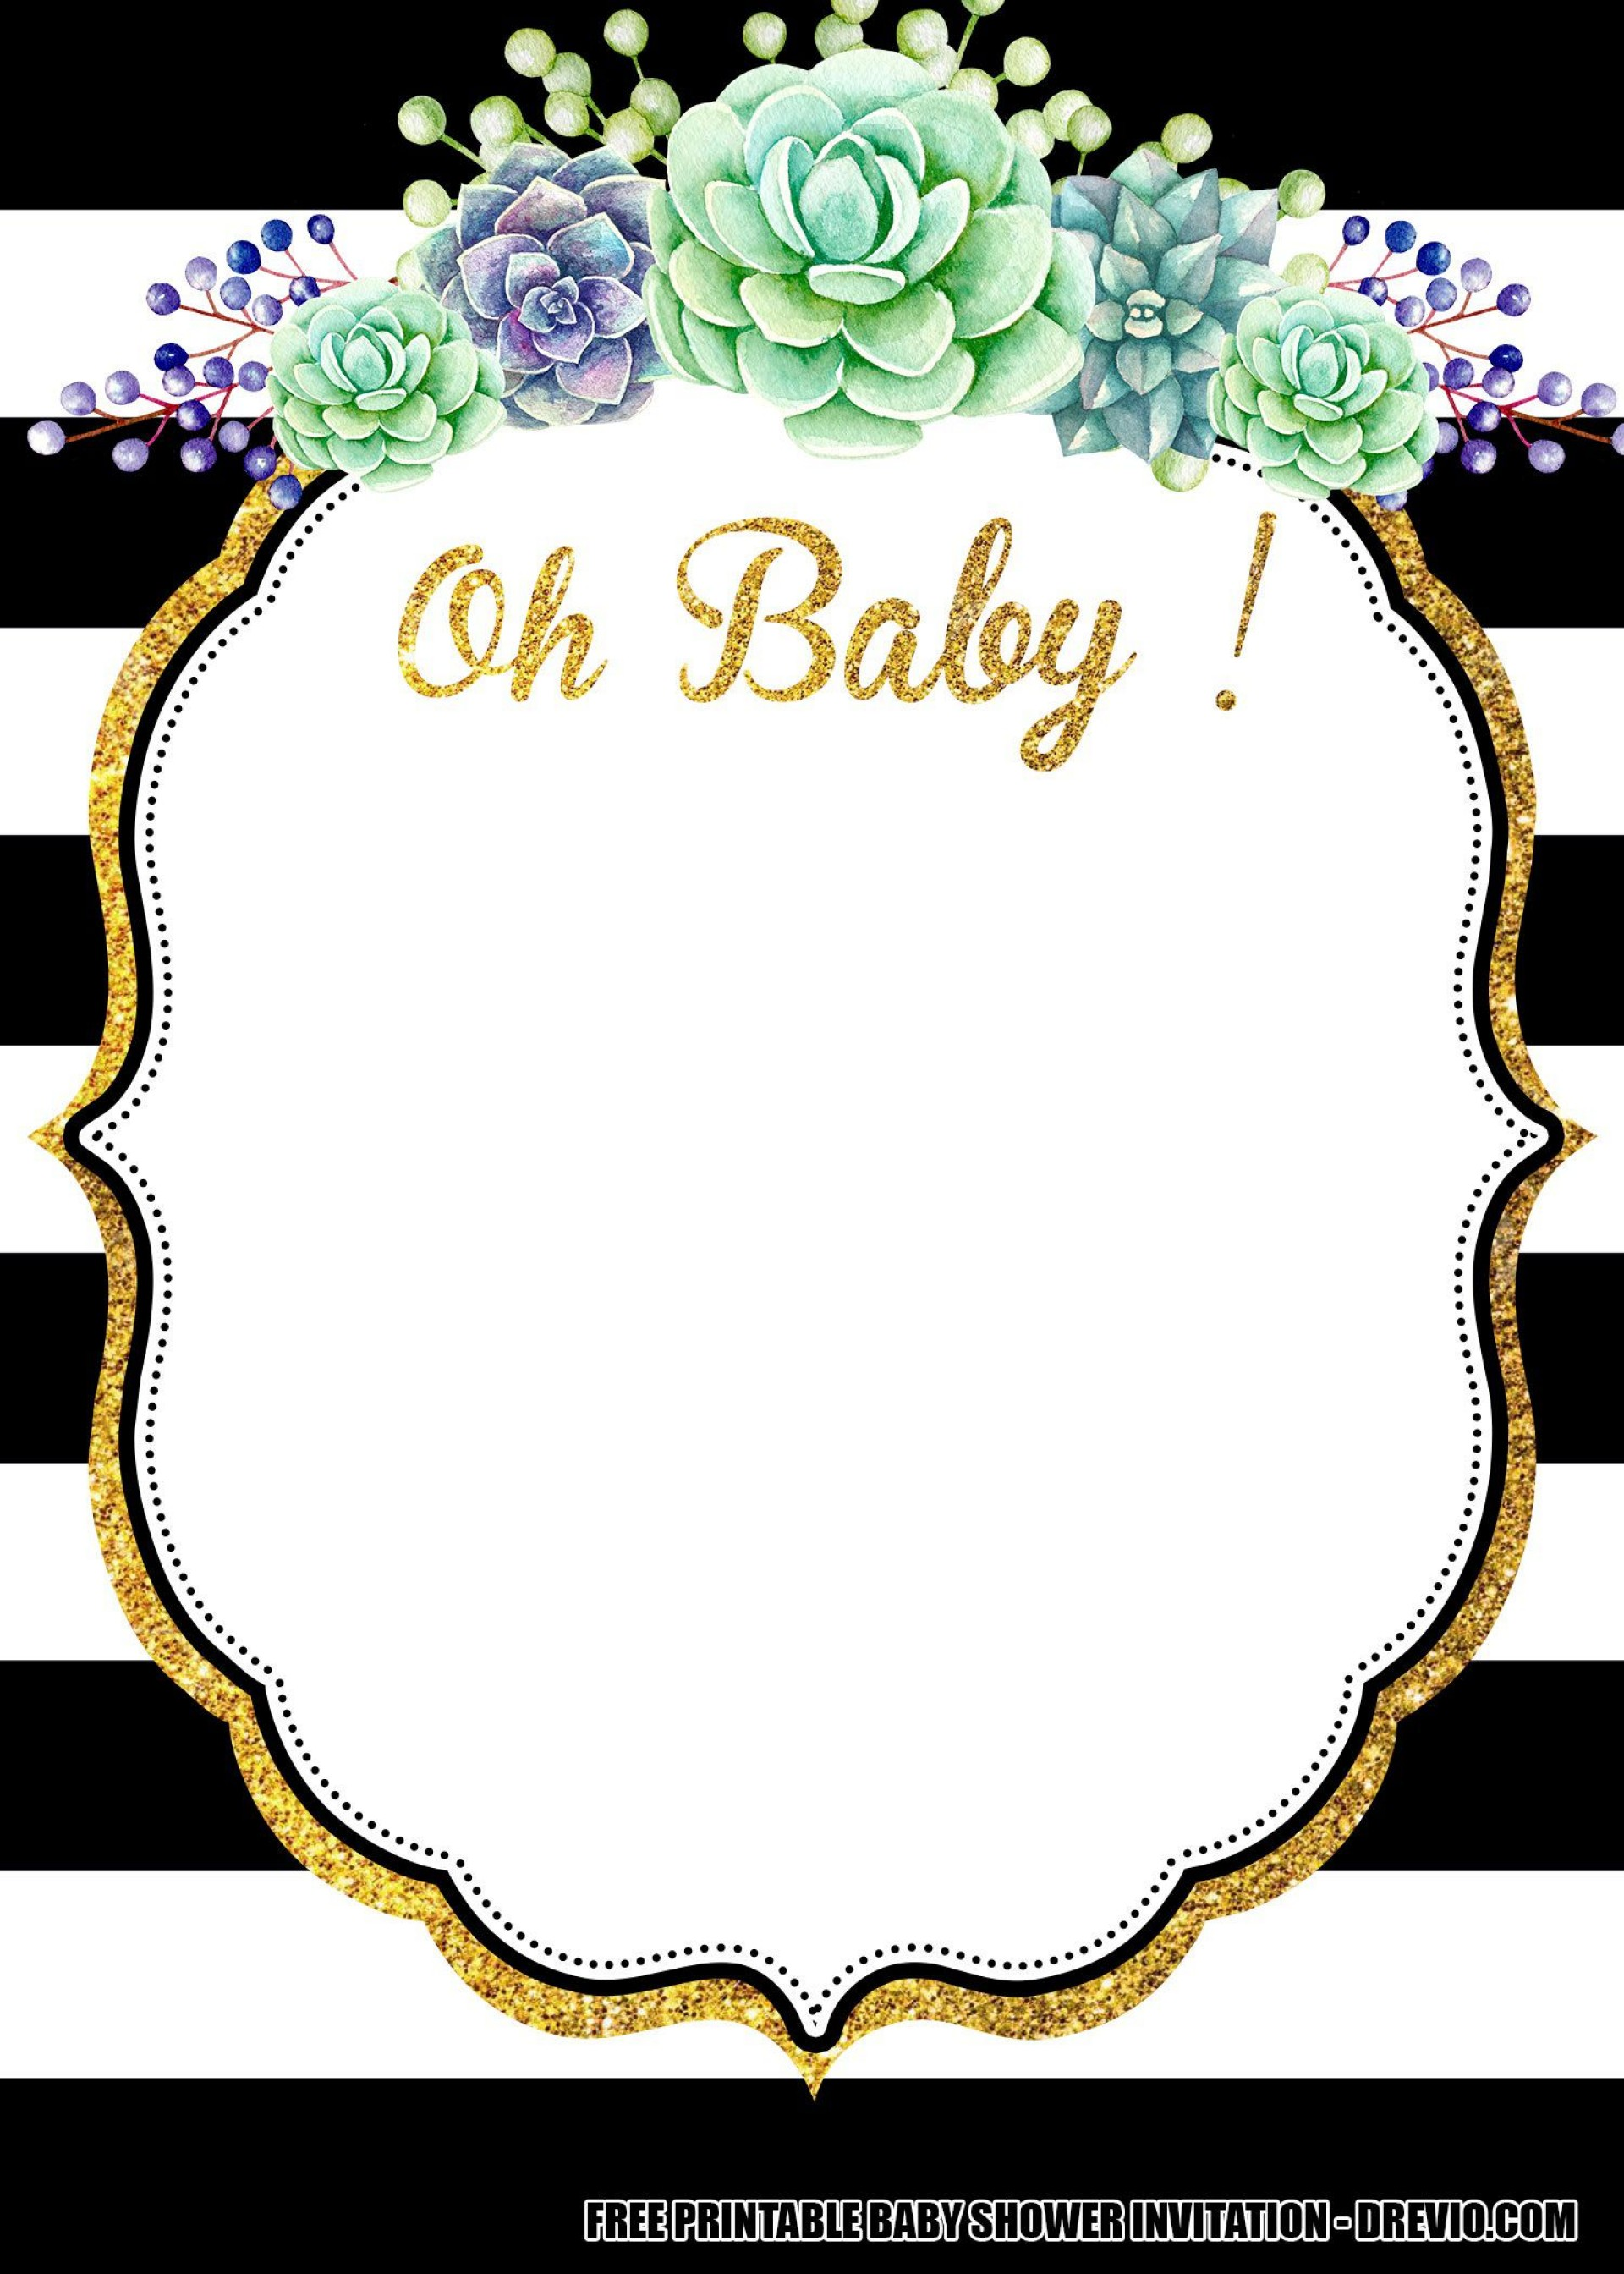 006 Astounding Baby Shower Invitation Free Template Highest Clarity  Templates Online Printable E-invitation Card Design Download1920